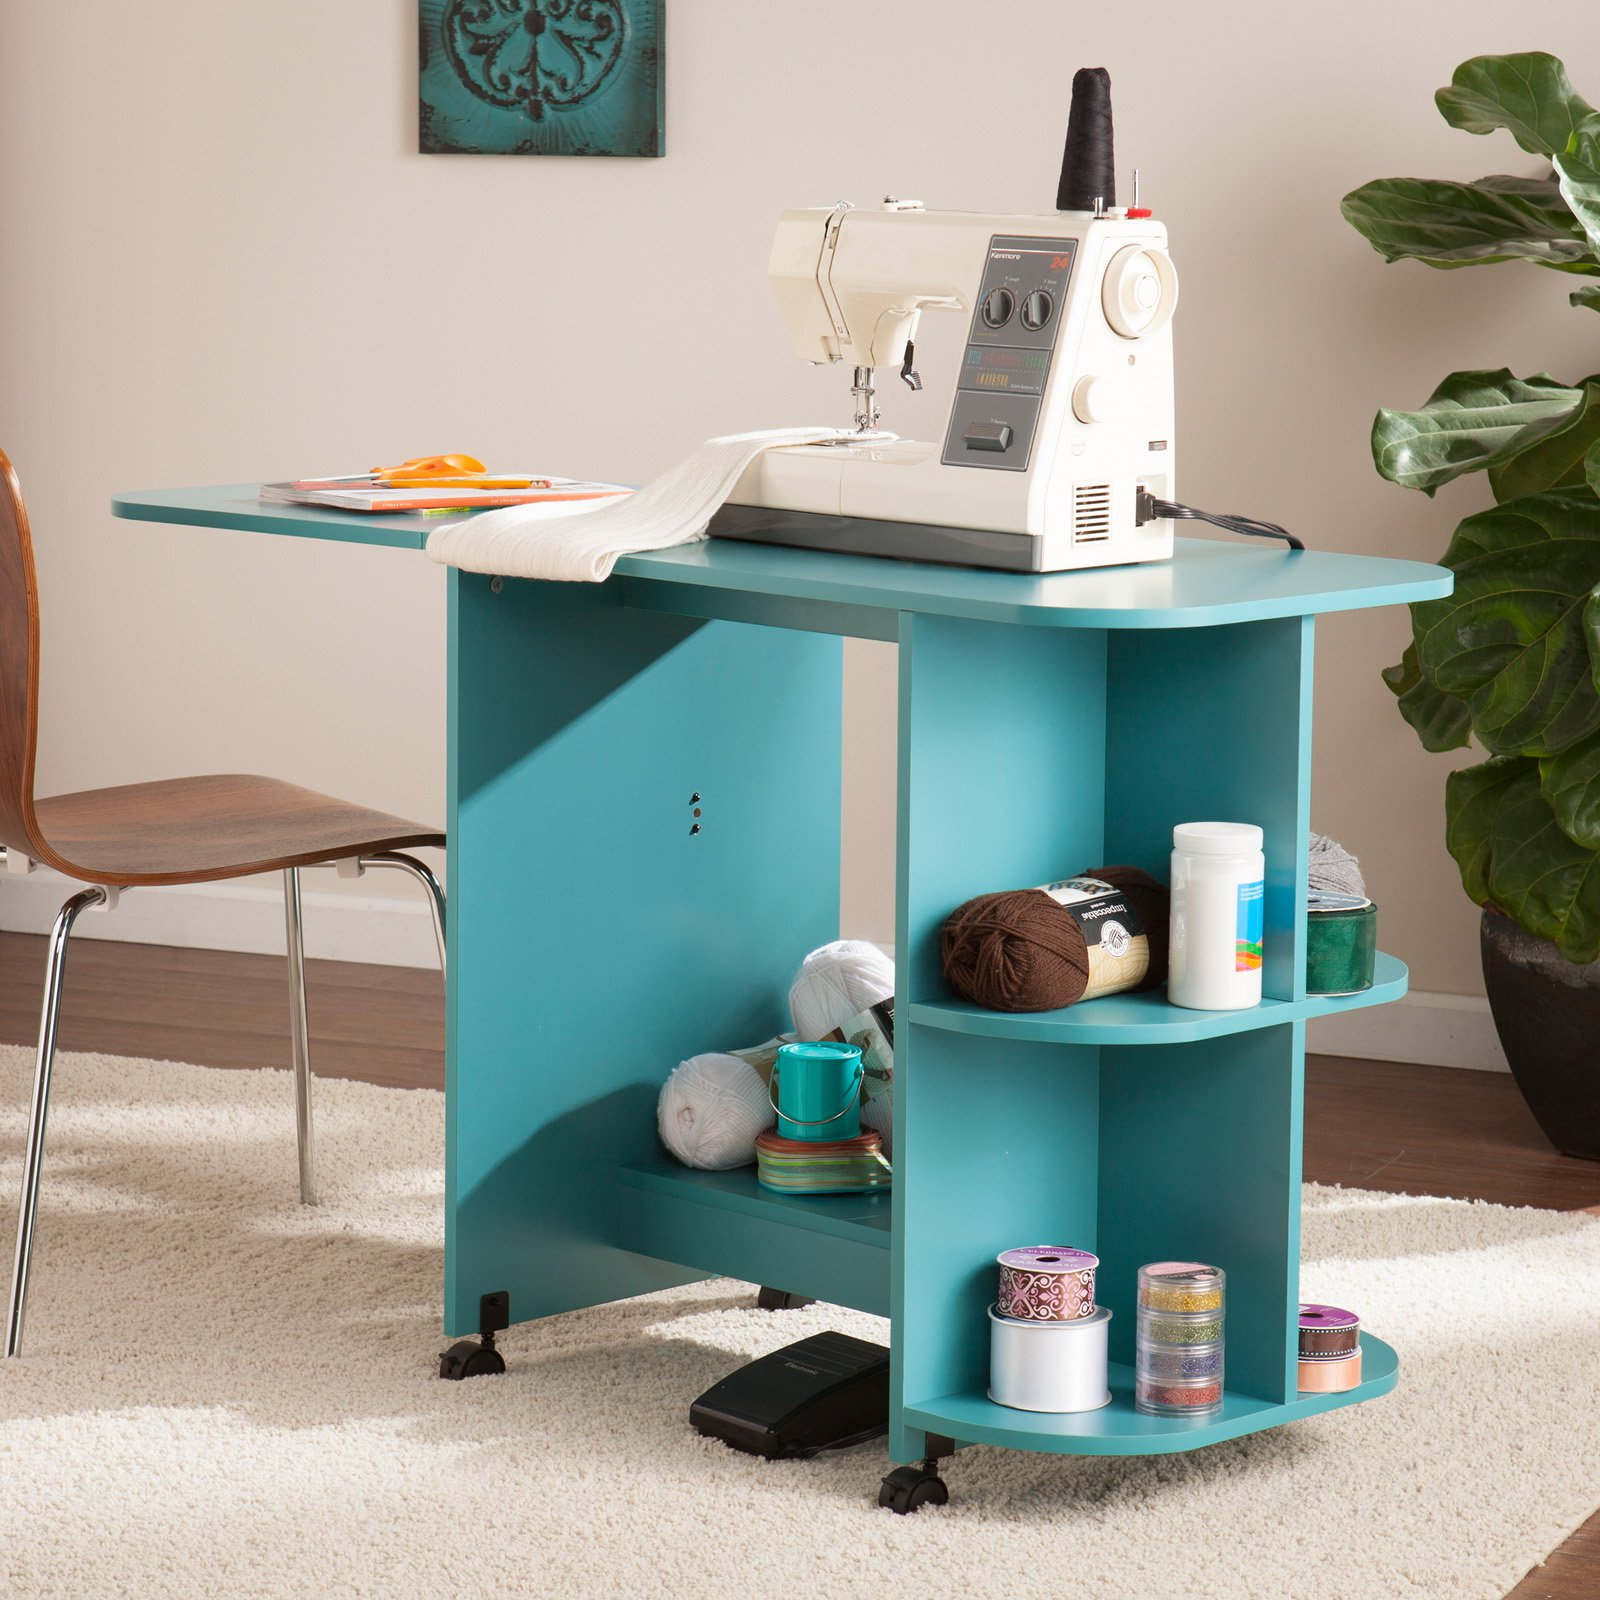 Southern Enterprises Expandable Rolling Sewing Table / Craft Station - Turquoise